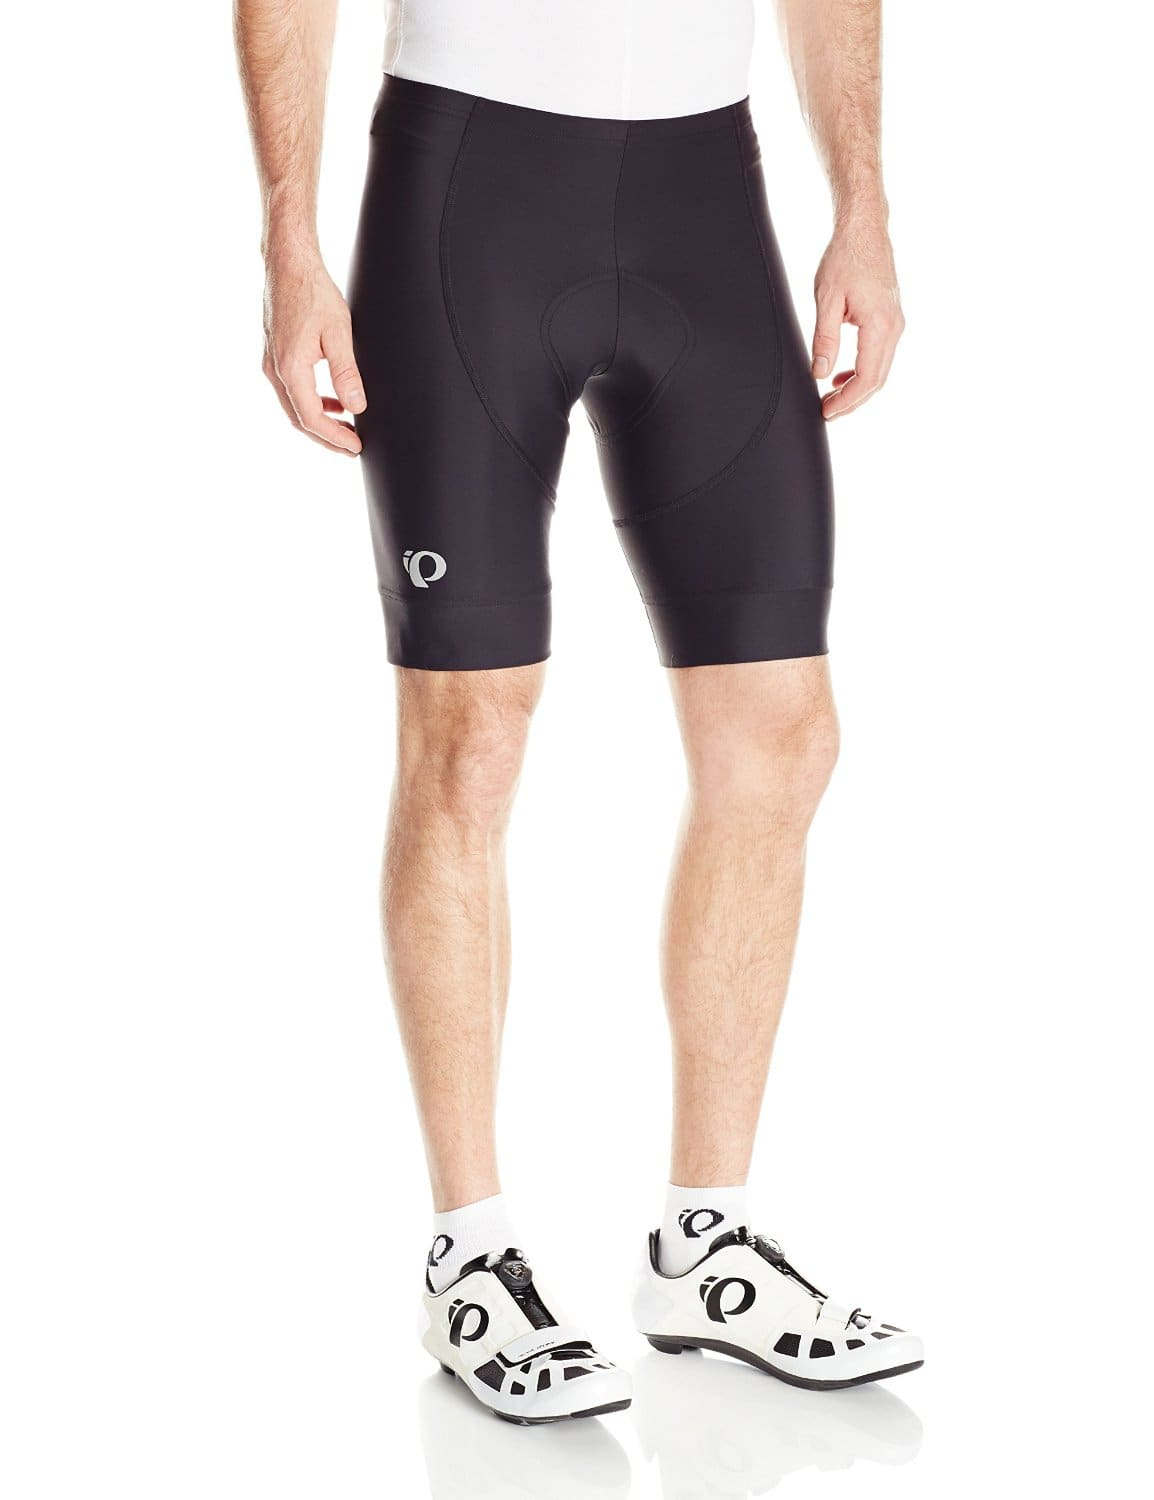 Pearl Izumi ELITE Pursuit cycling shorts $32-$36 on Amazon - $120 retail